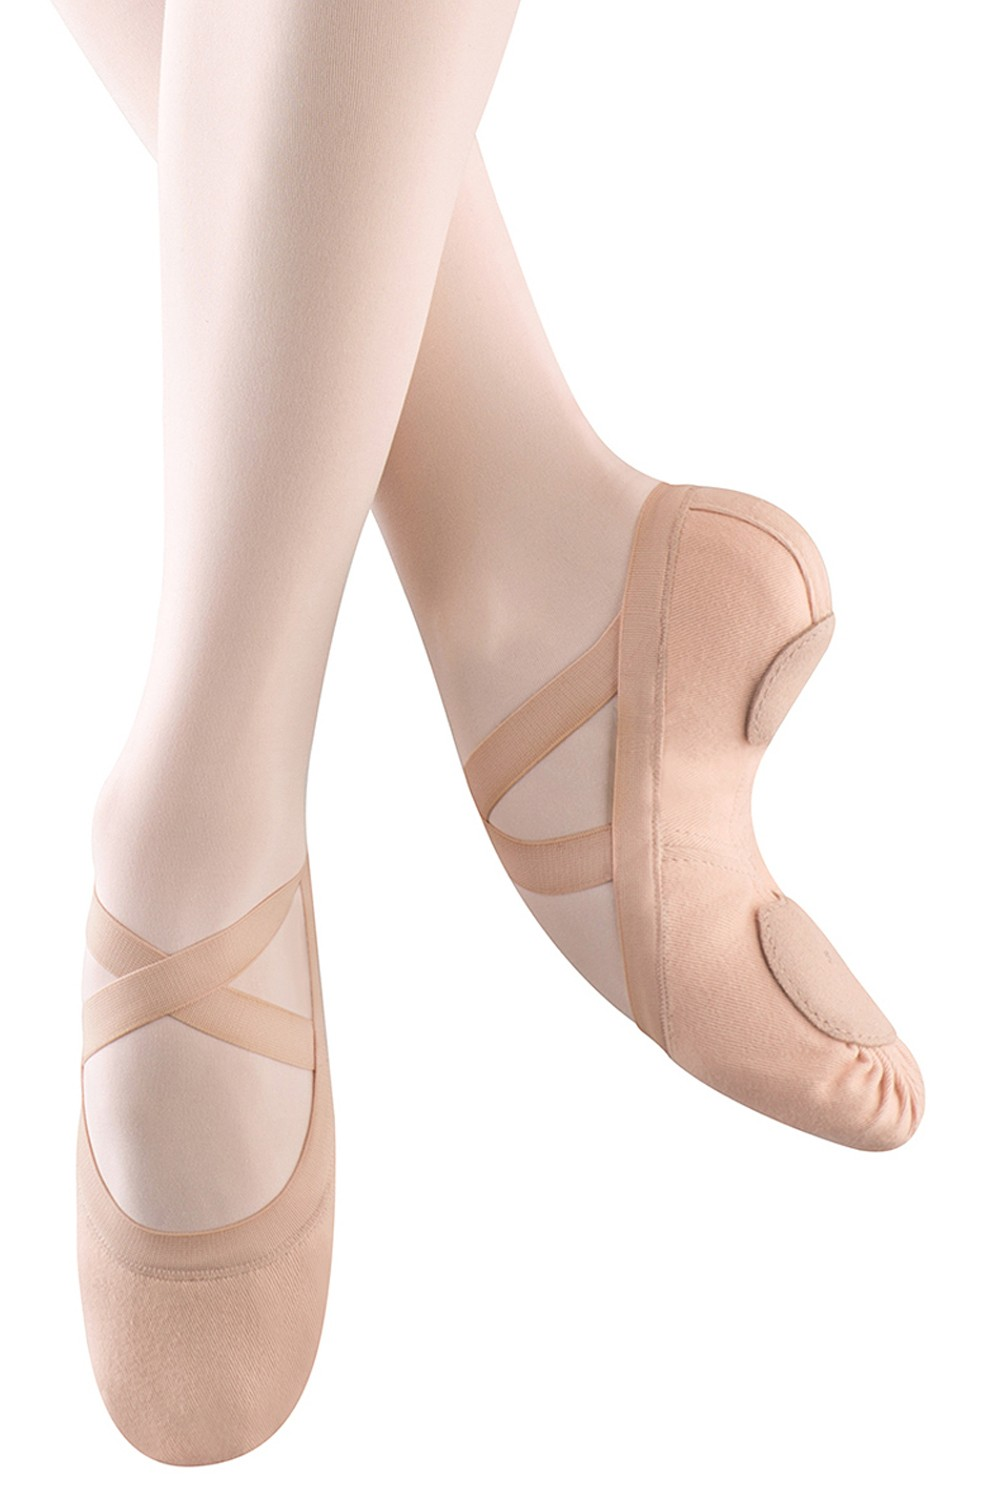 e82f40ba1be BLOCH® Soft Ballet Shoes - BLOCH® US Store